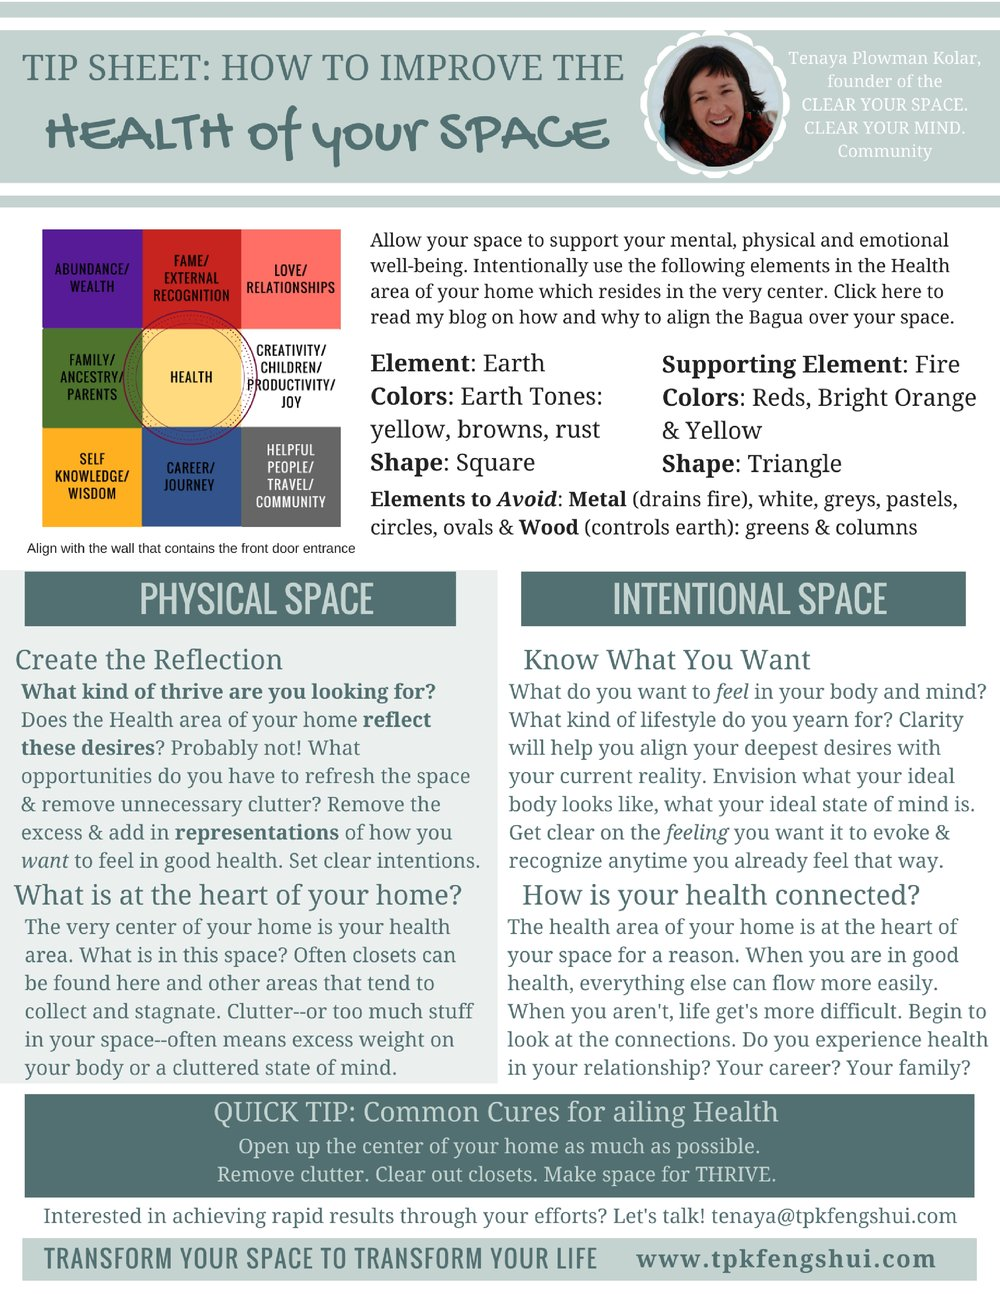 Health Tip Sheet- How to improve the health of your space.jpg